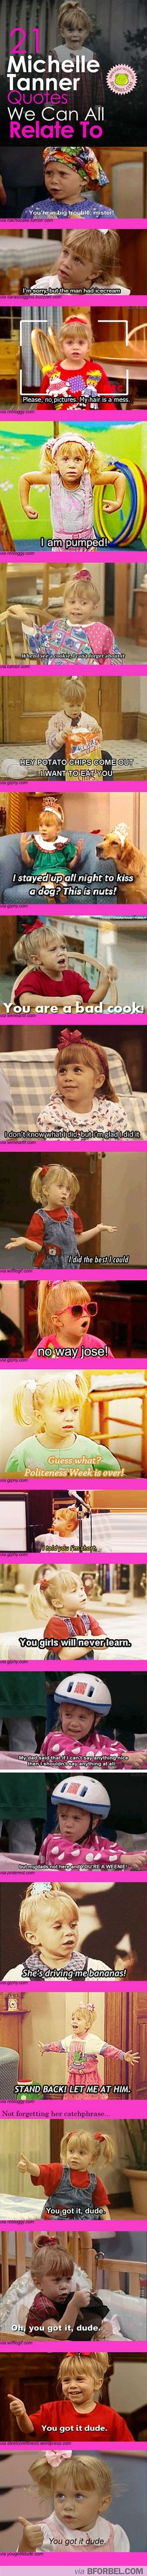 21 Michelle Tanner Quotes We Can All Relate To… | B for Bel